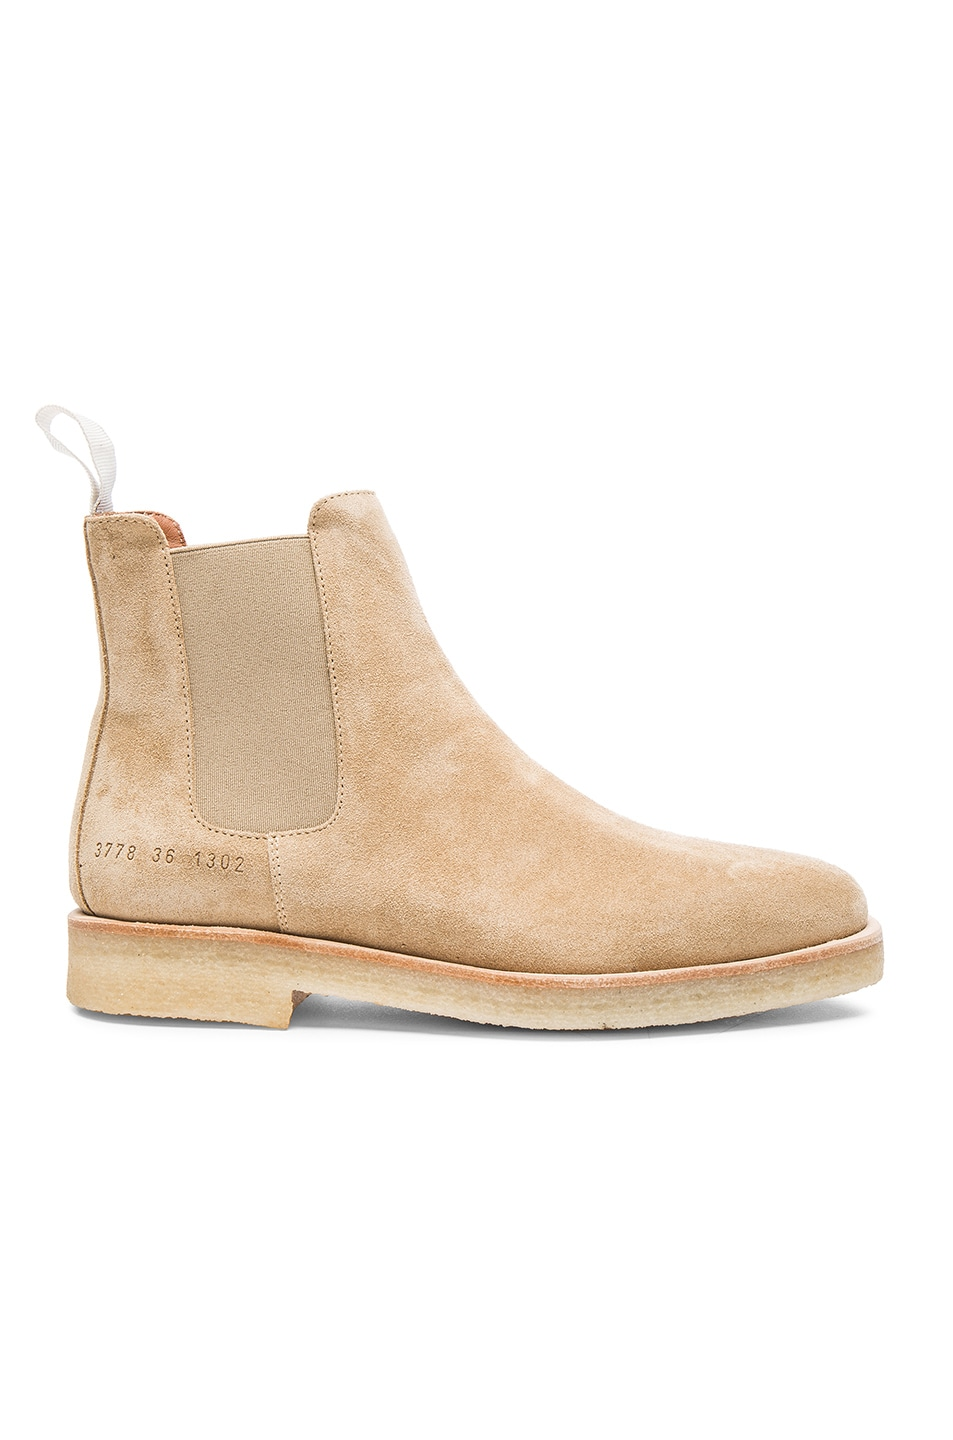 common projects suede chelsea boots in sand fwrd